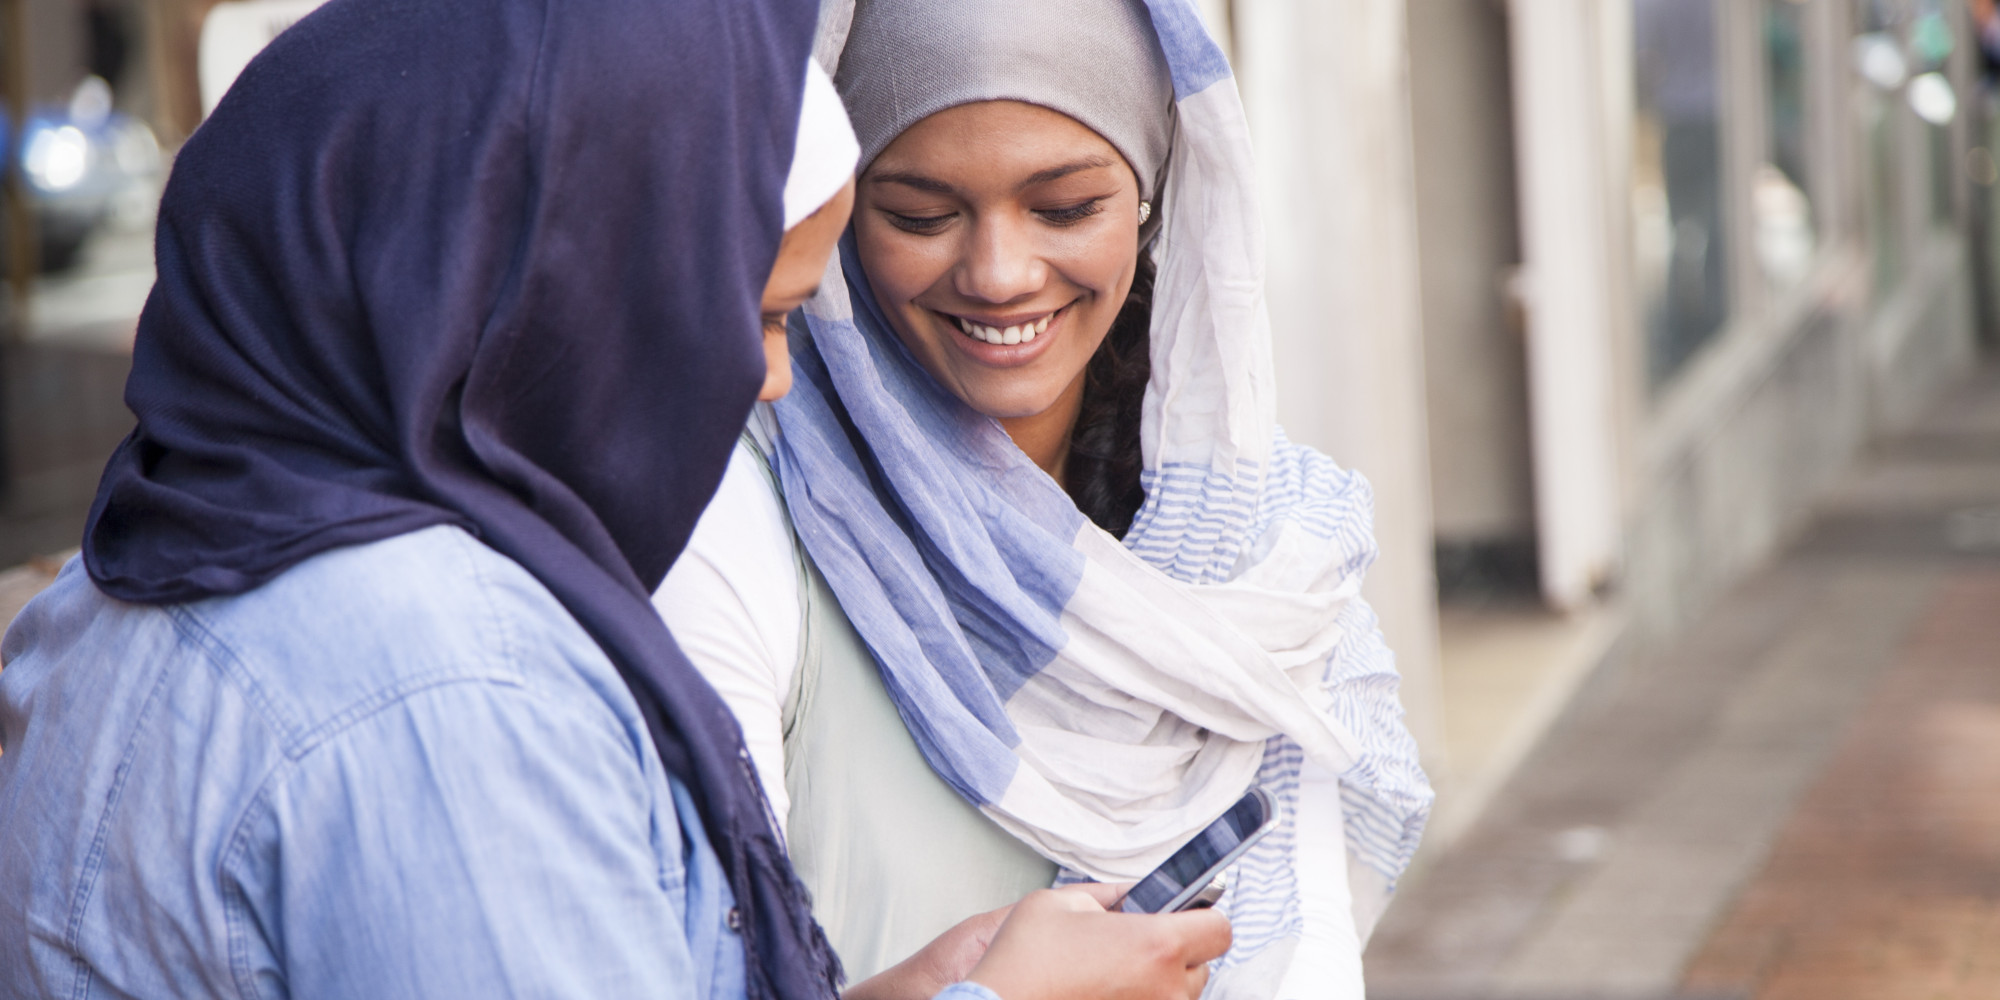 lompoc muslim girl personals Meet single muslim men in lompoc are you ready to discover a single muslim man to tie the nuptial knot with or are you just trying to find a new friend to go looking for antique store treasures with in lompoc.